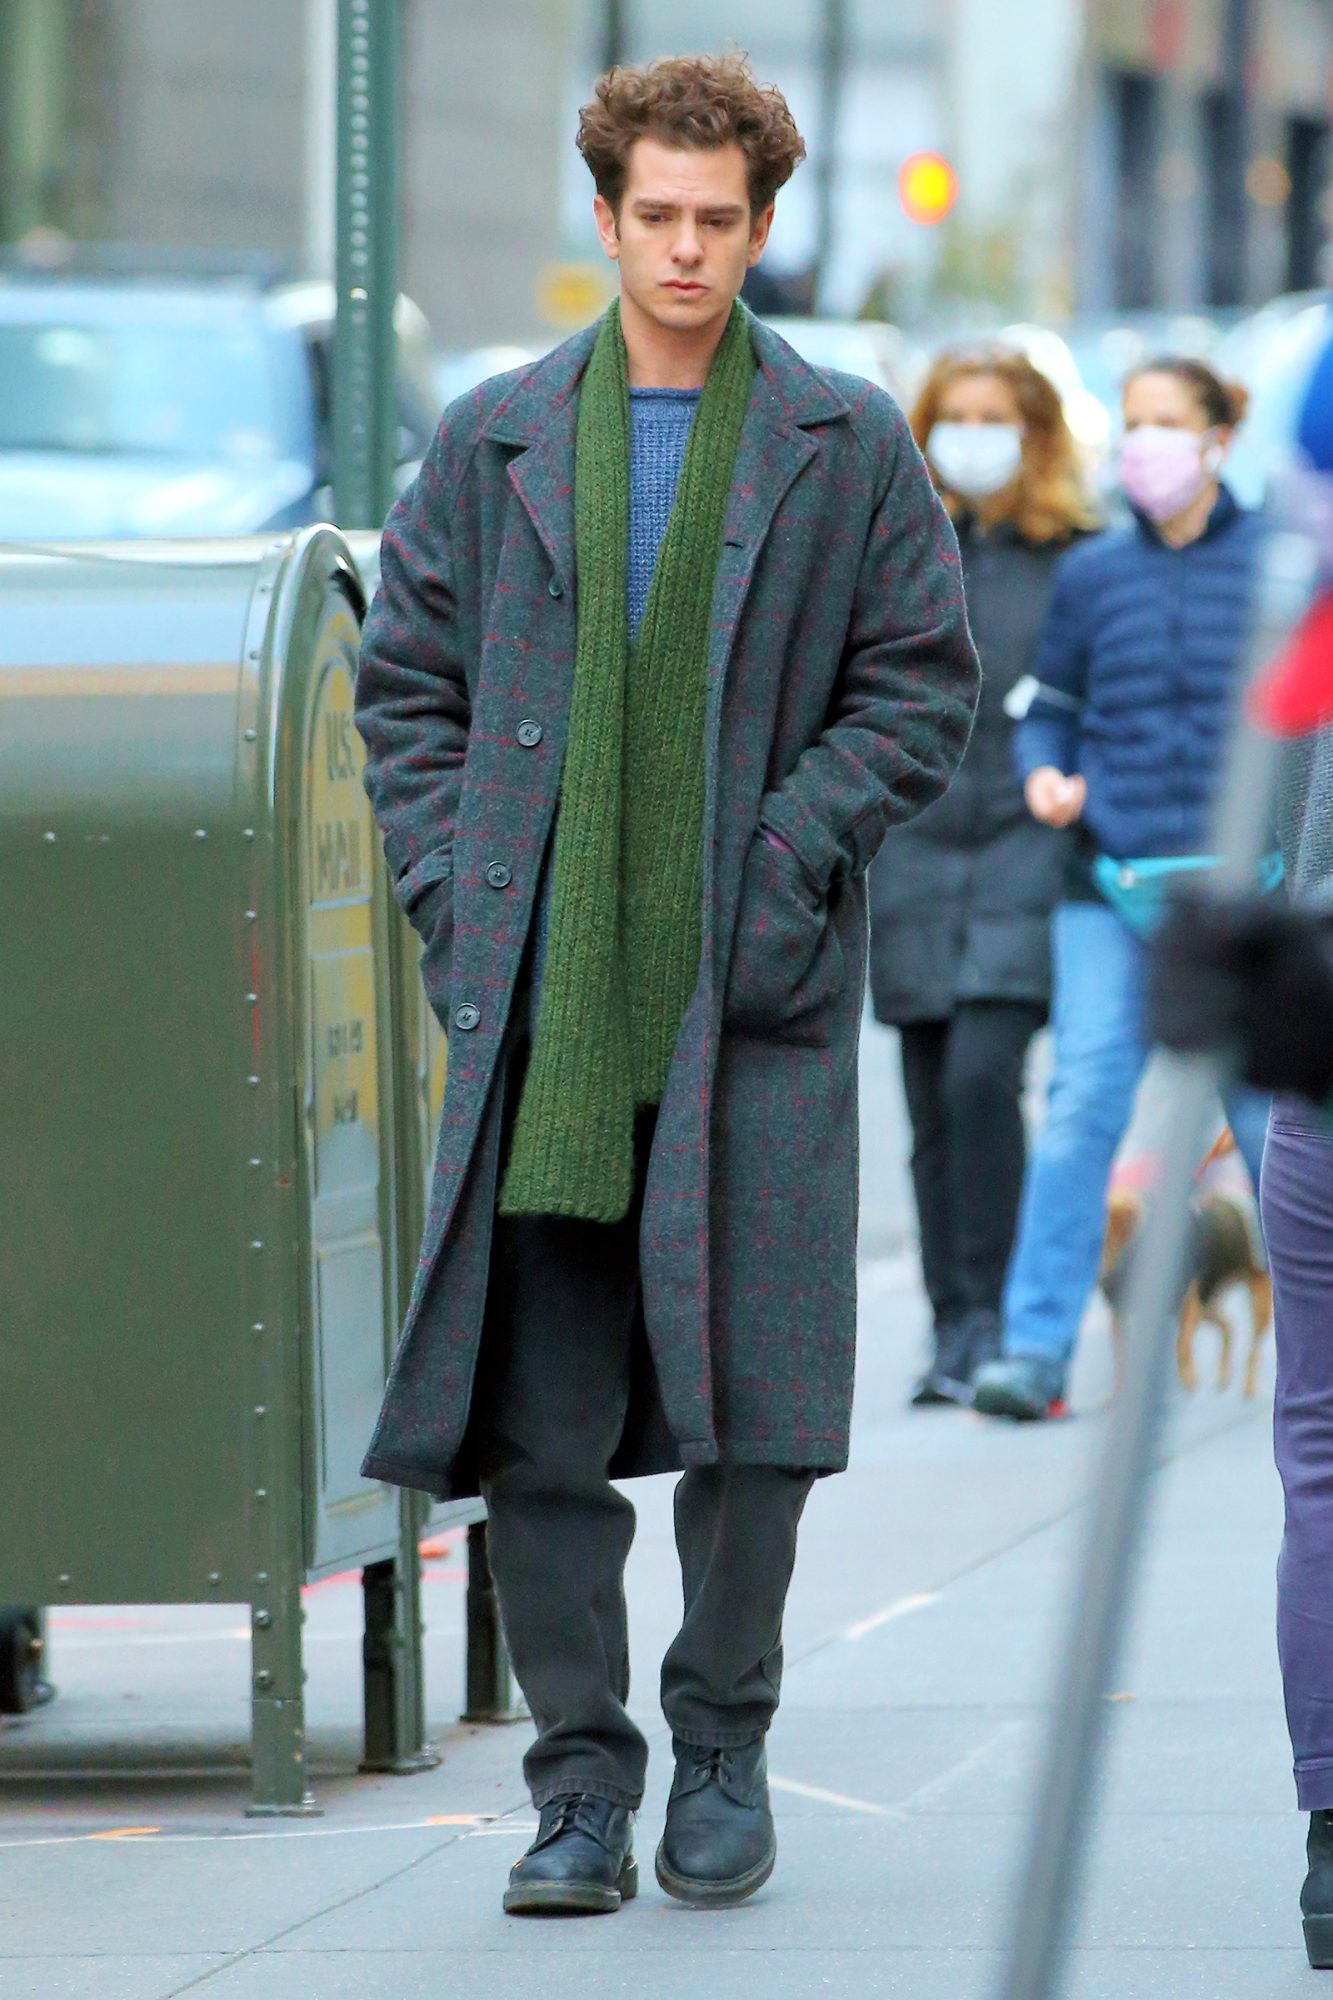 Andrew Garfield makes a call from a vintage phone booth filming 'Tick Tick Boom' in Midtown in New York City.